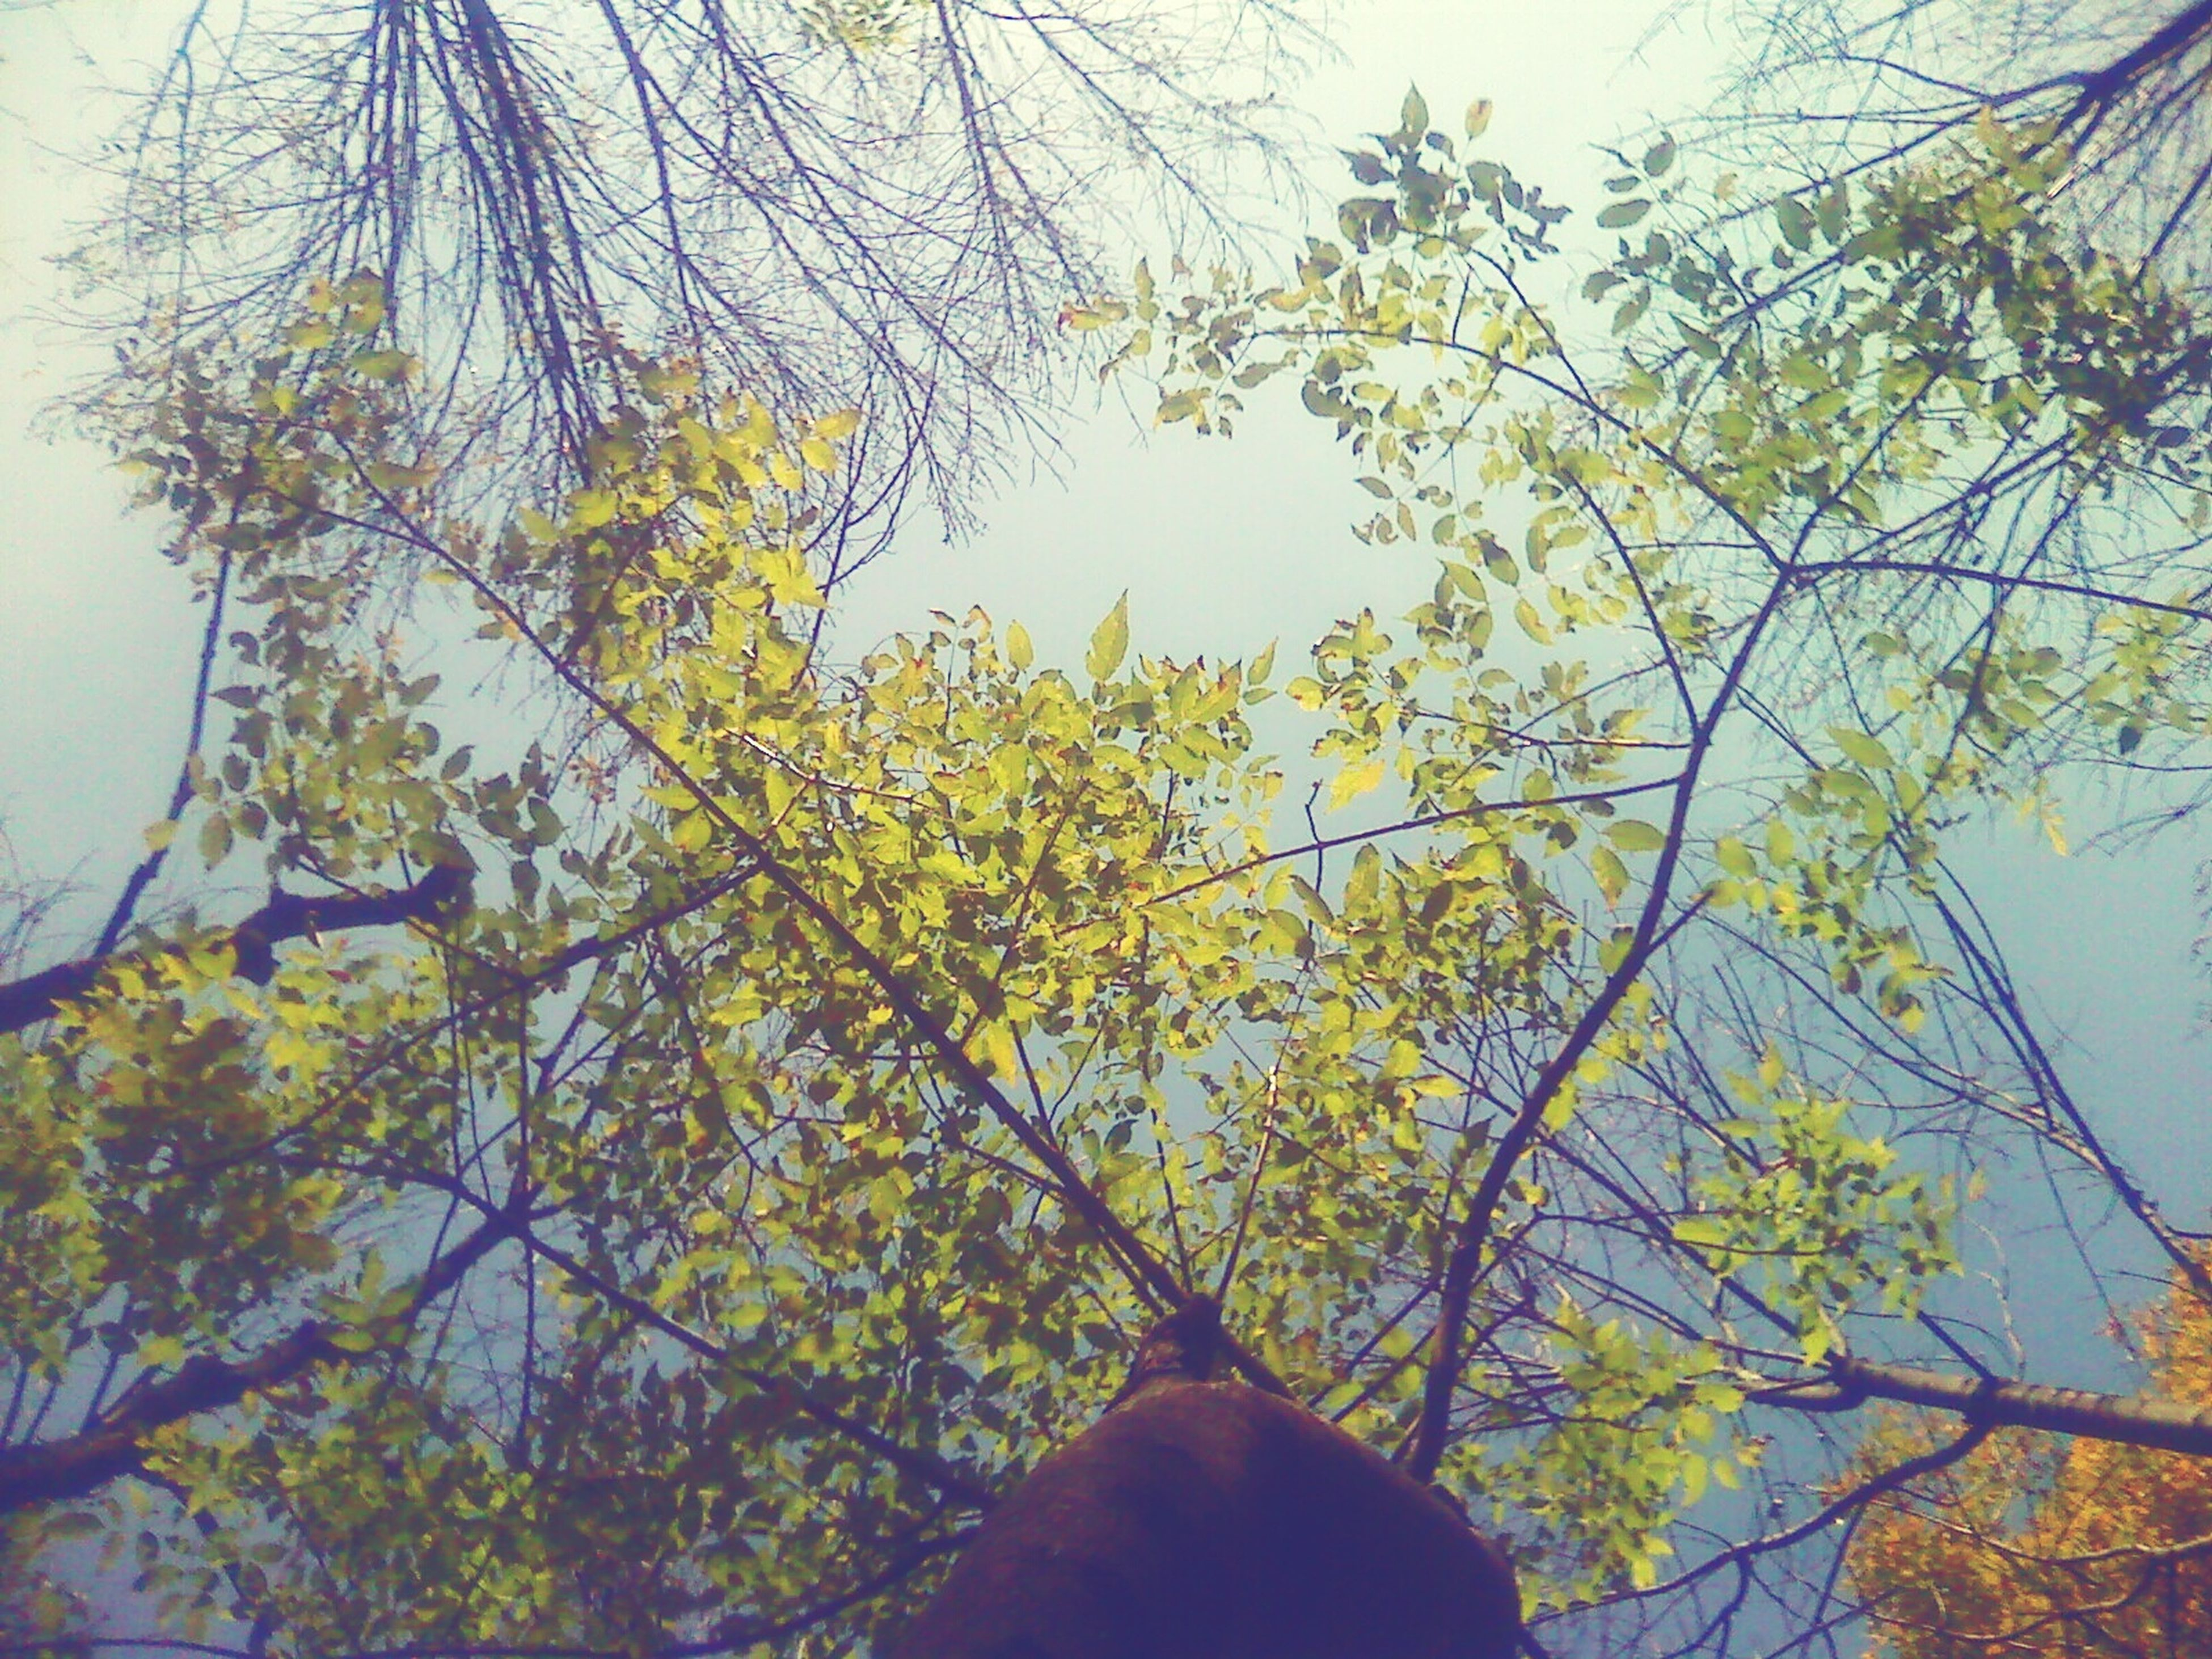 tree, branch, low angle view, growth, clear sky, nature, leaf, autumn, sky, tranquility, beauty in nature, day, outdoors, change, scenics, sunlight, tree trunk, yellow, no people